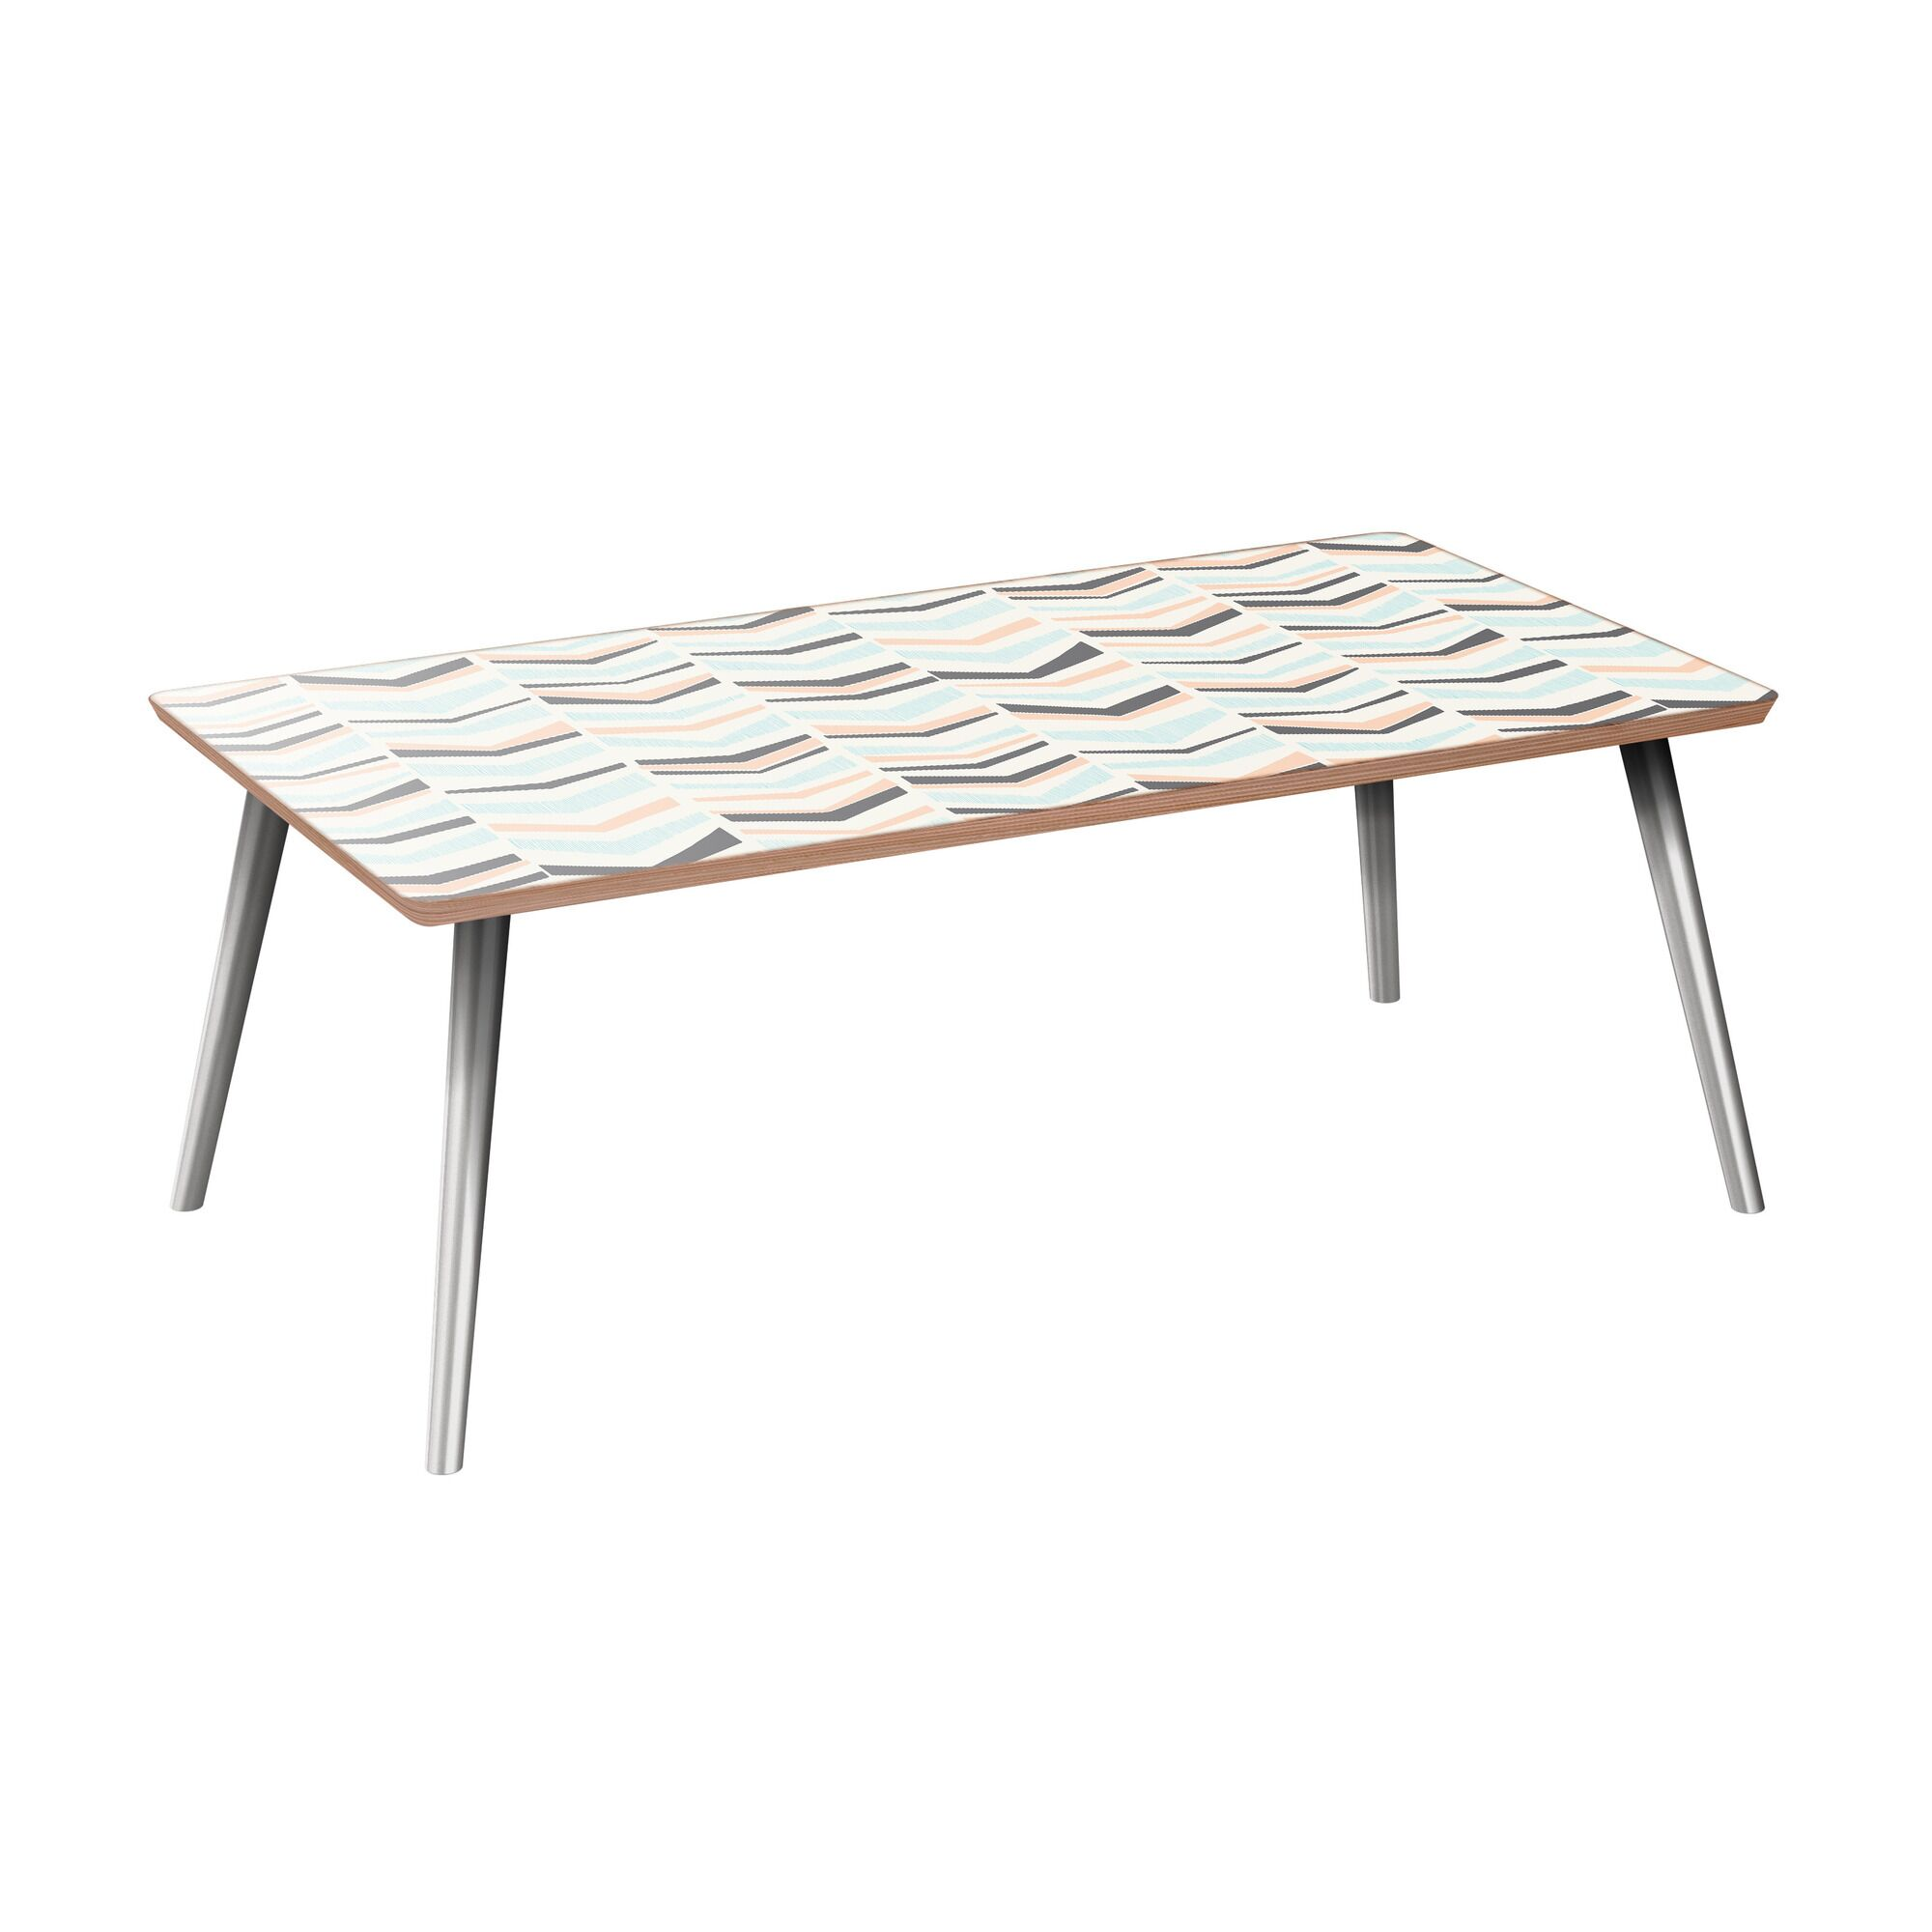 Schmit Coffee Table Table Base Color: Chrome, Table Top Color: Walnut